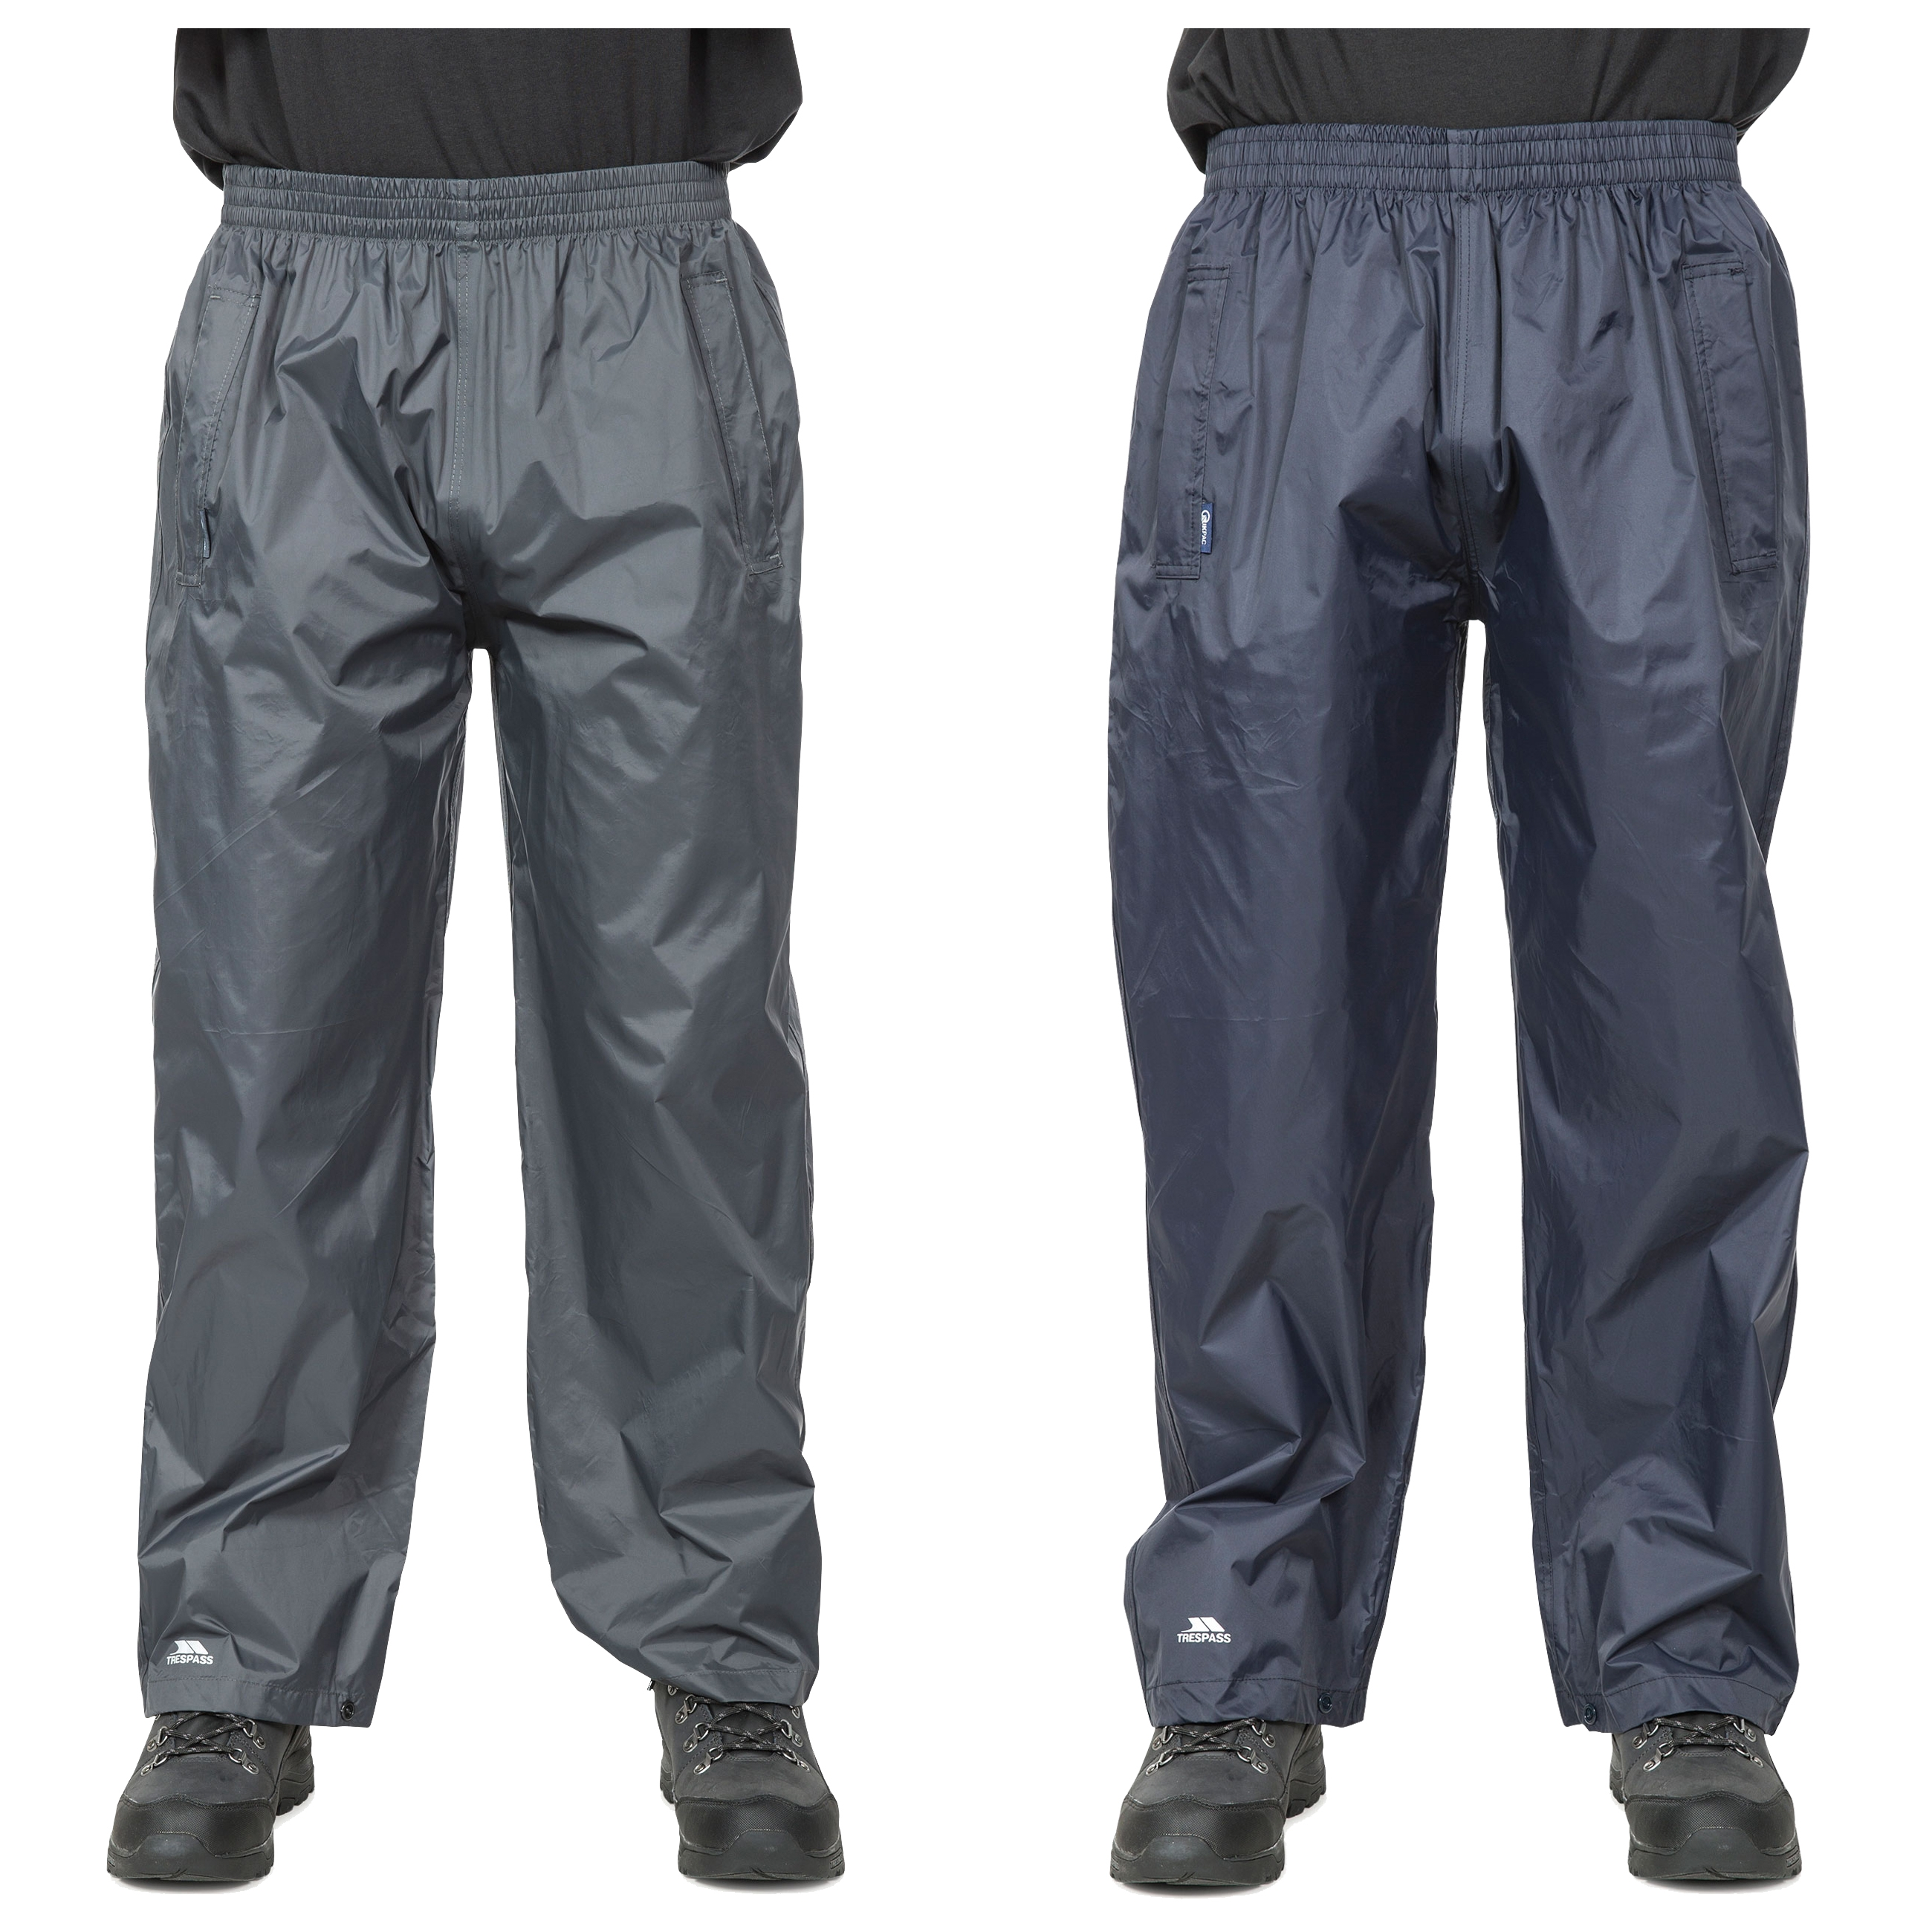 Trespass-Mens-Womens-Waterproof-Trousers-Packaway-Breathable-Qikpac thumbnail 1